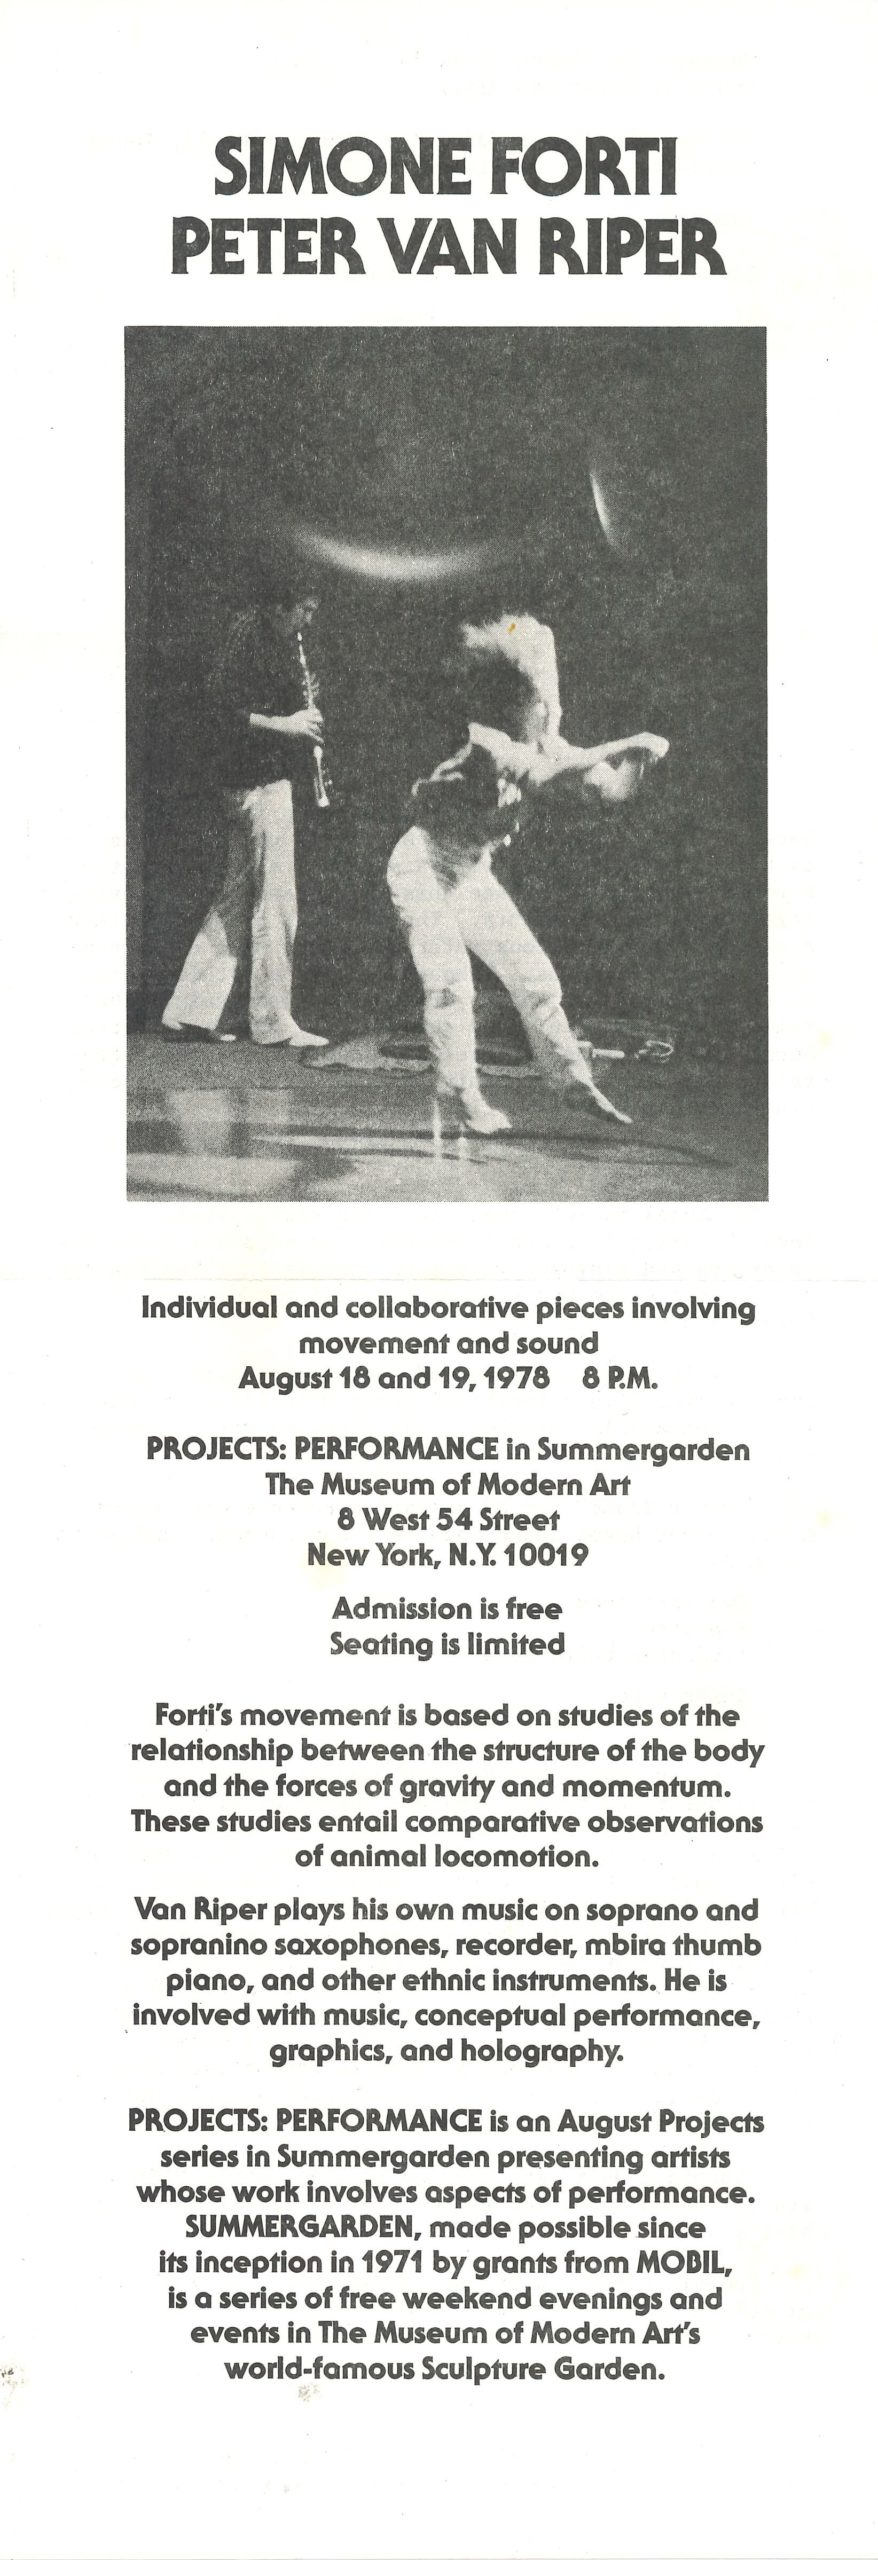 Simone Forti & Peter van Riper, PROJECTS PERFORMACE, Summergarden, The Museum of Modern Art New York, 1976 (Announcement); Archiv der Avantgarden, Staatliche Kunstsammlungen Dresden